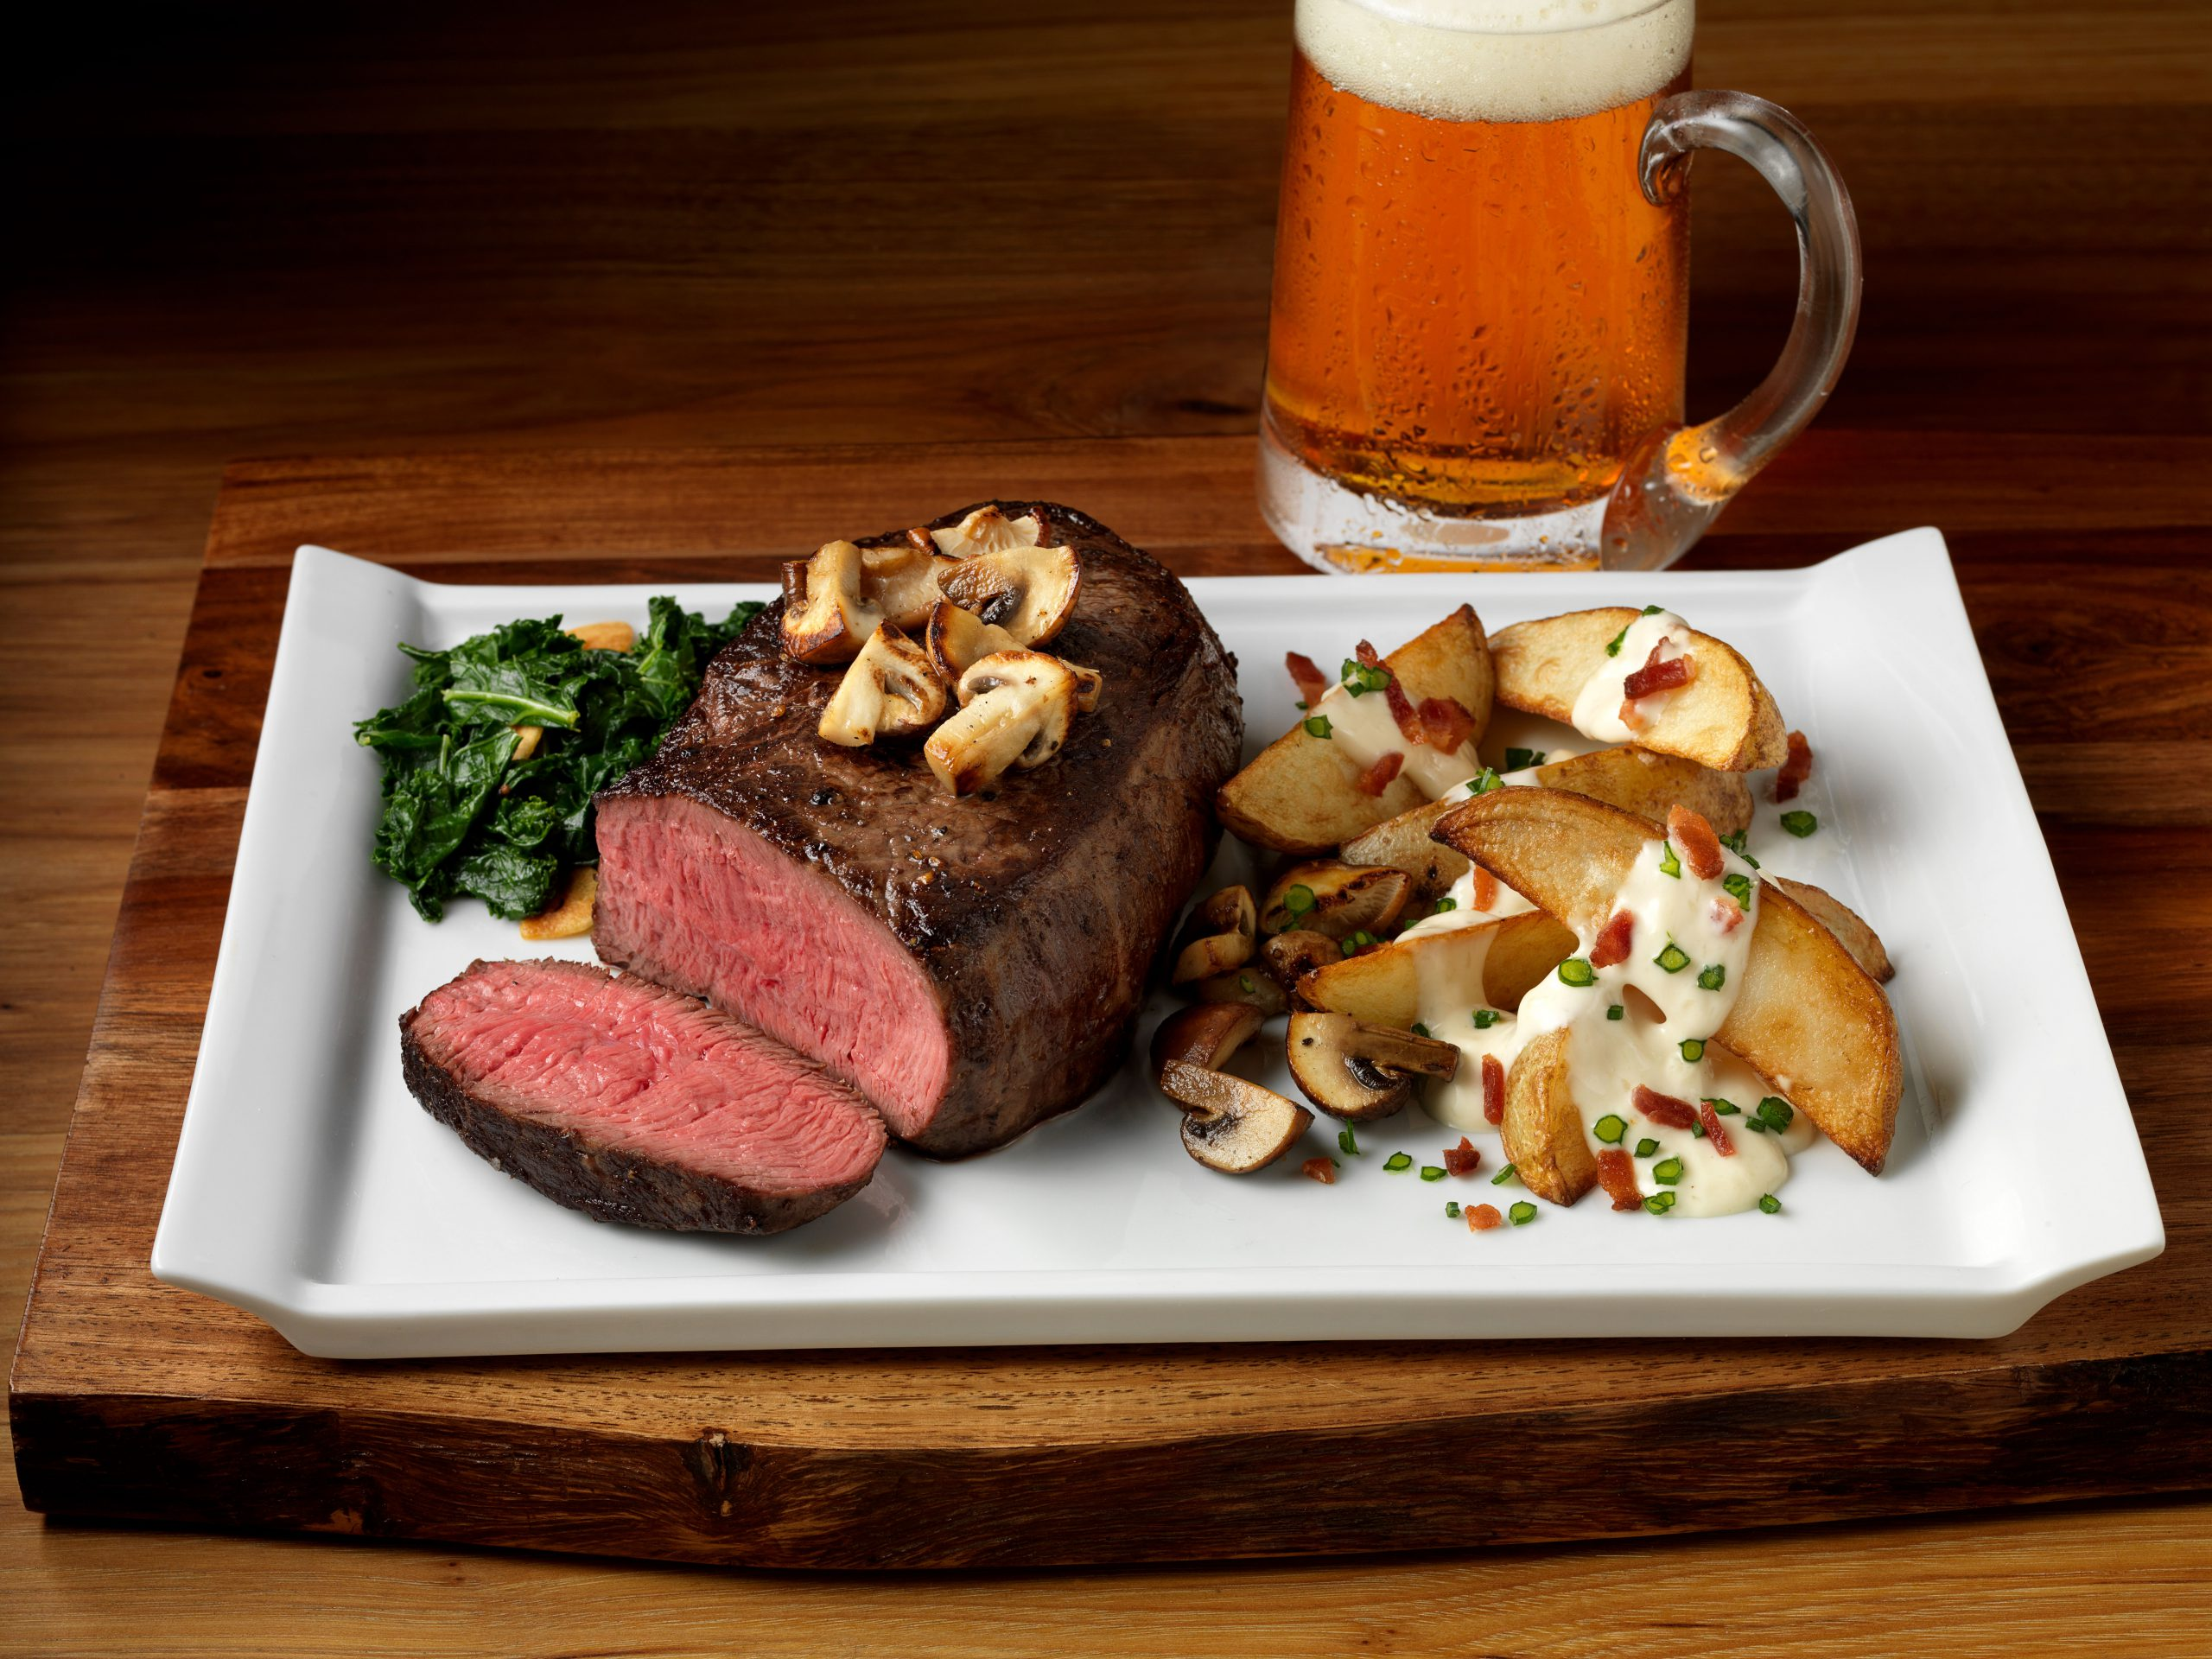 Natural Tenderloin Steak with Mushrooms and potato side